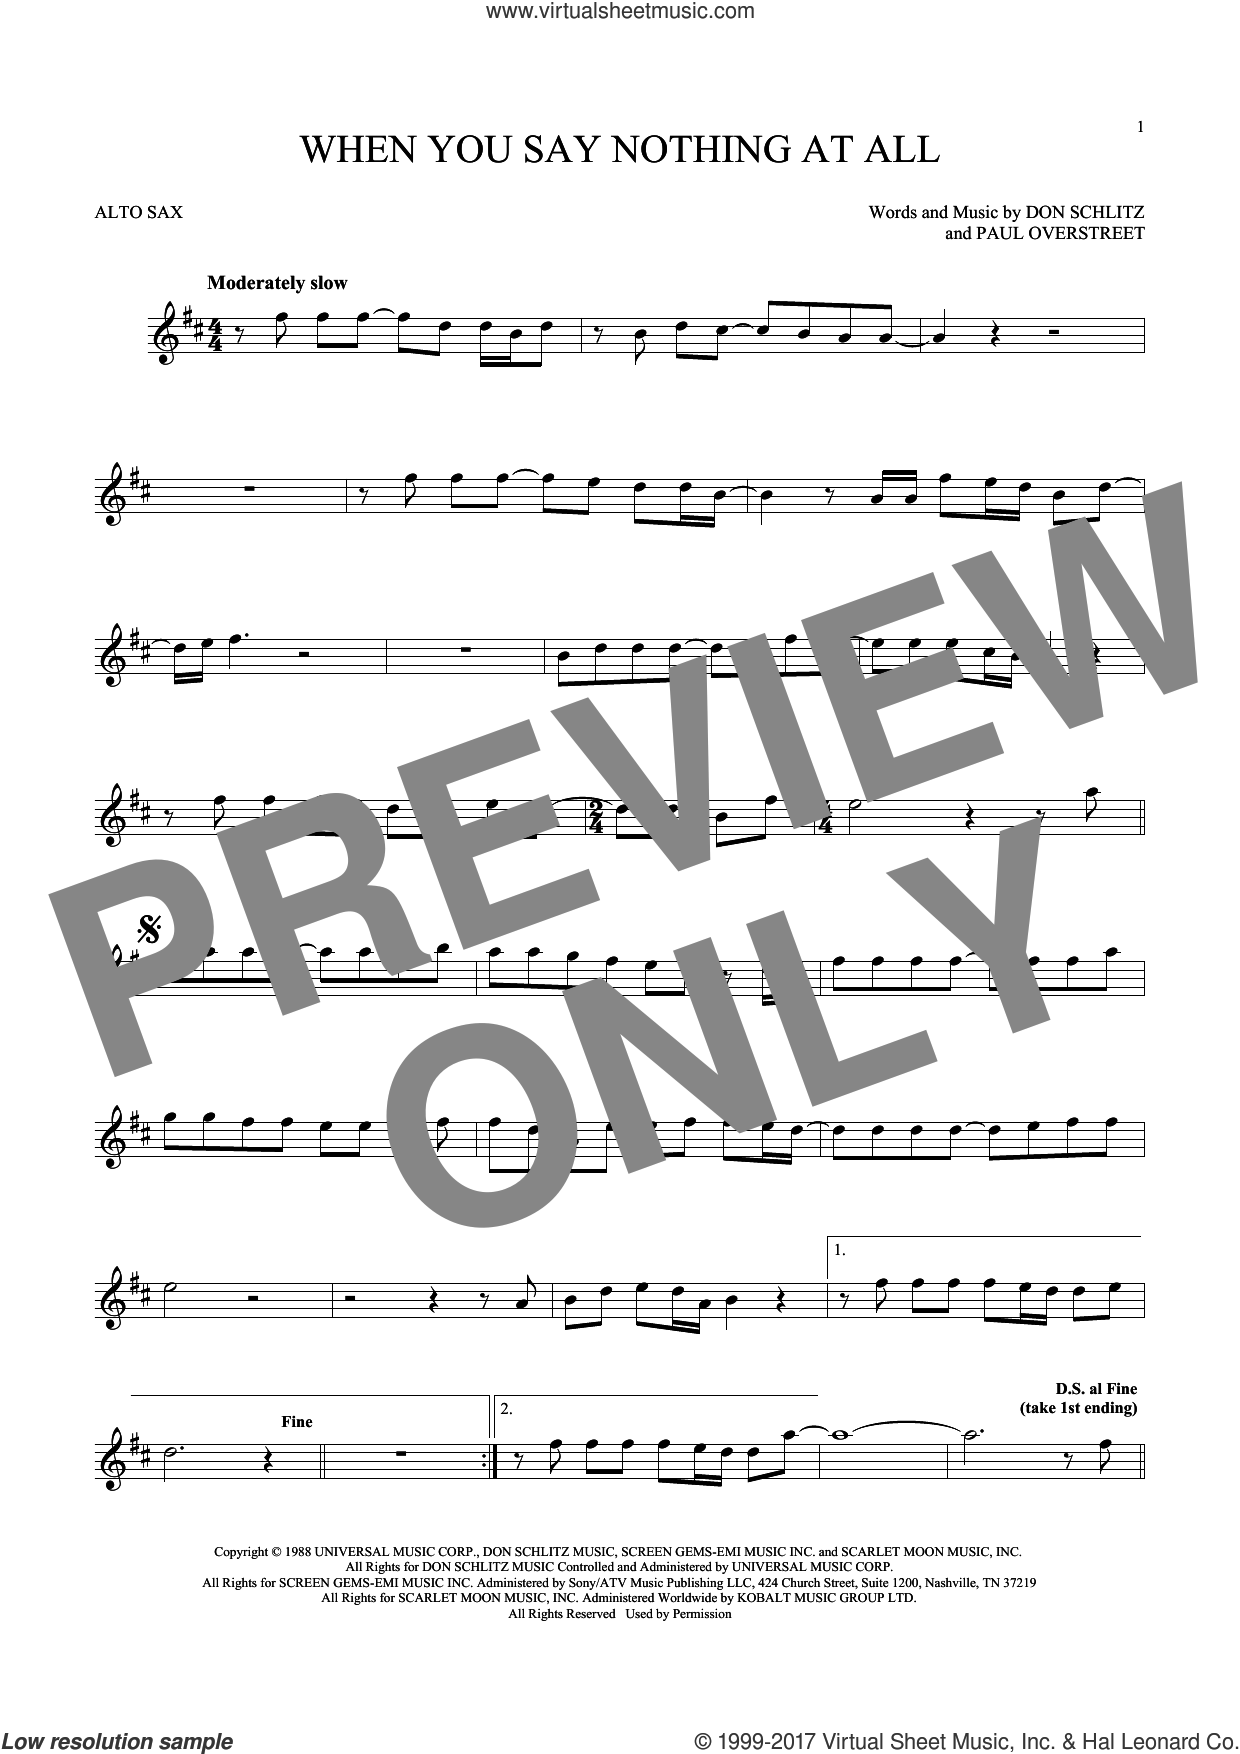 When You Say Nothing At All sheet music for alto saxophone solo by Alison Krauss & Union Station, Keith Whitley, Don Schlitz and Paul Overstreet, wedding score, intermediate skill level